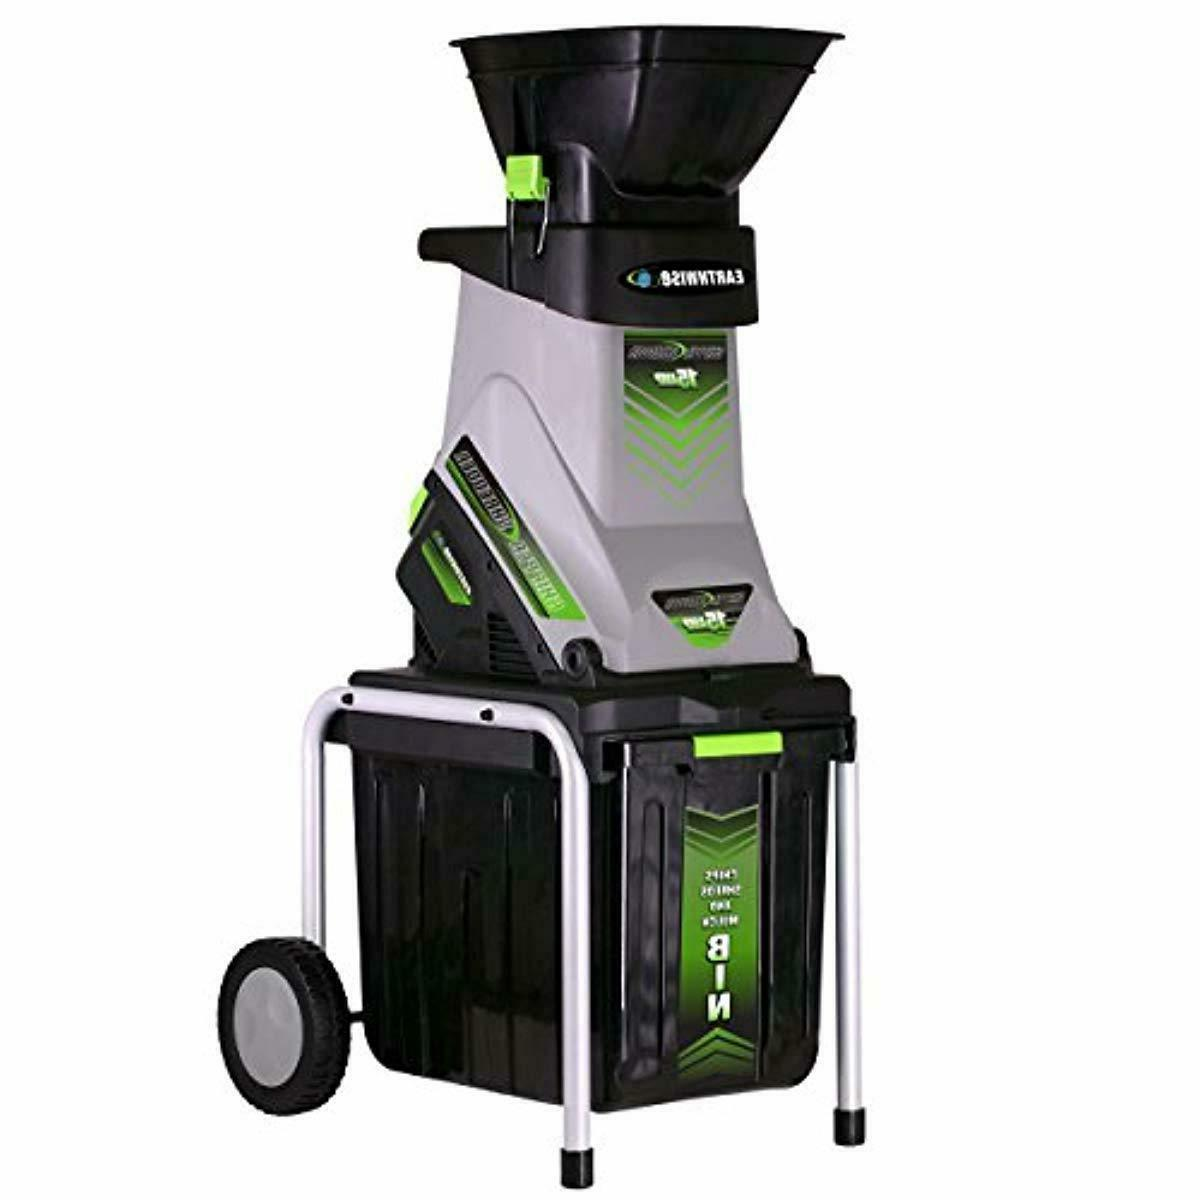 Wood Chippers Shredders 5 Amp Electric Chipper Bin